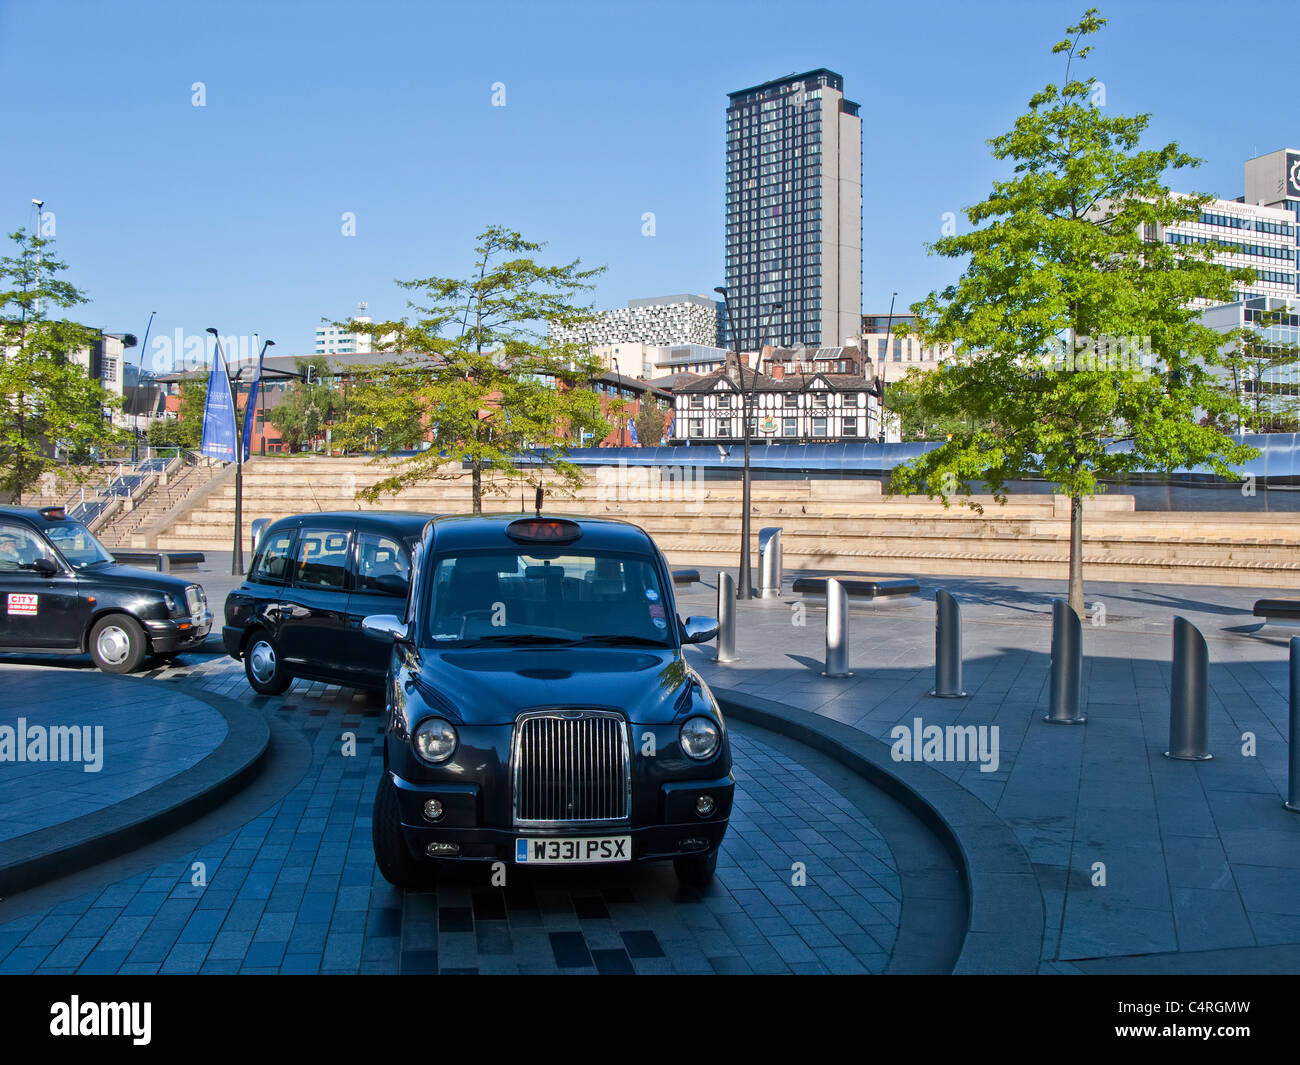 Taxi rank at Sheffield Midland railway station - Stock Image